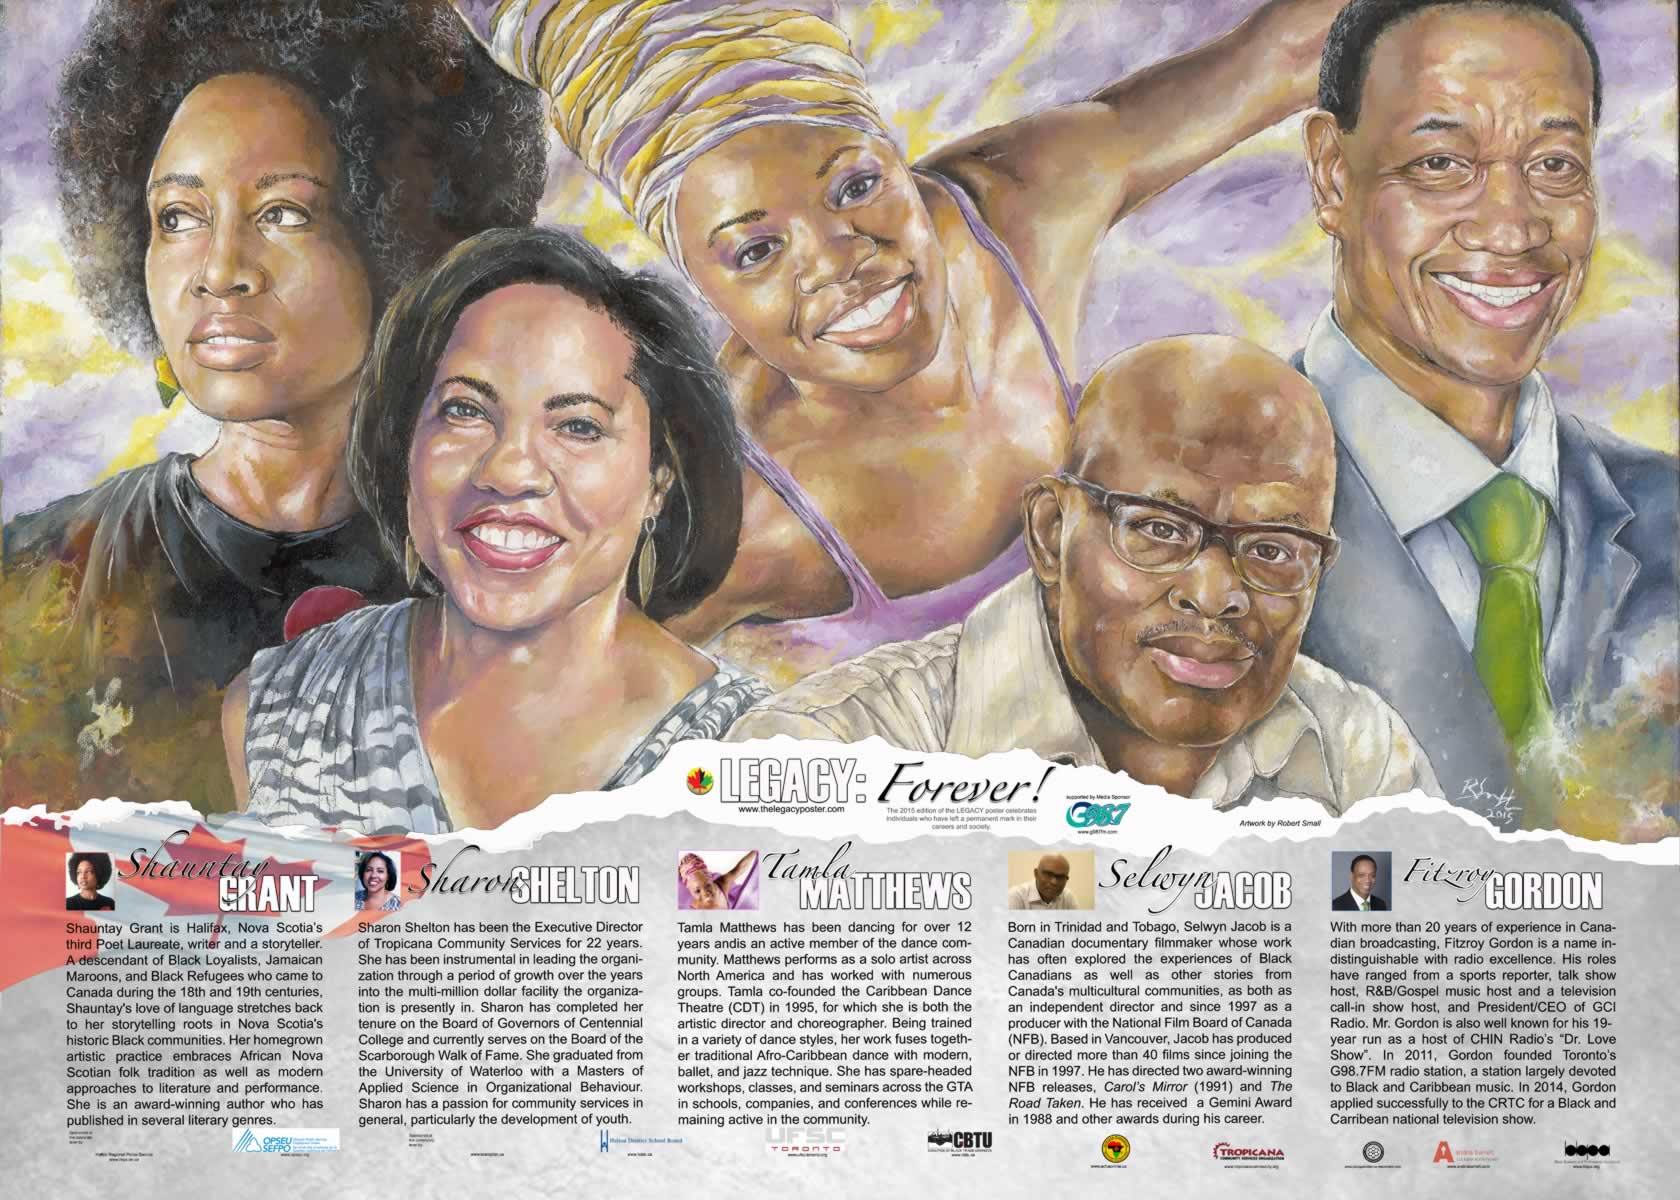 Legacy: Forever poster for black history month. Illustrations of different black leaders in the community